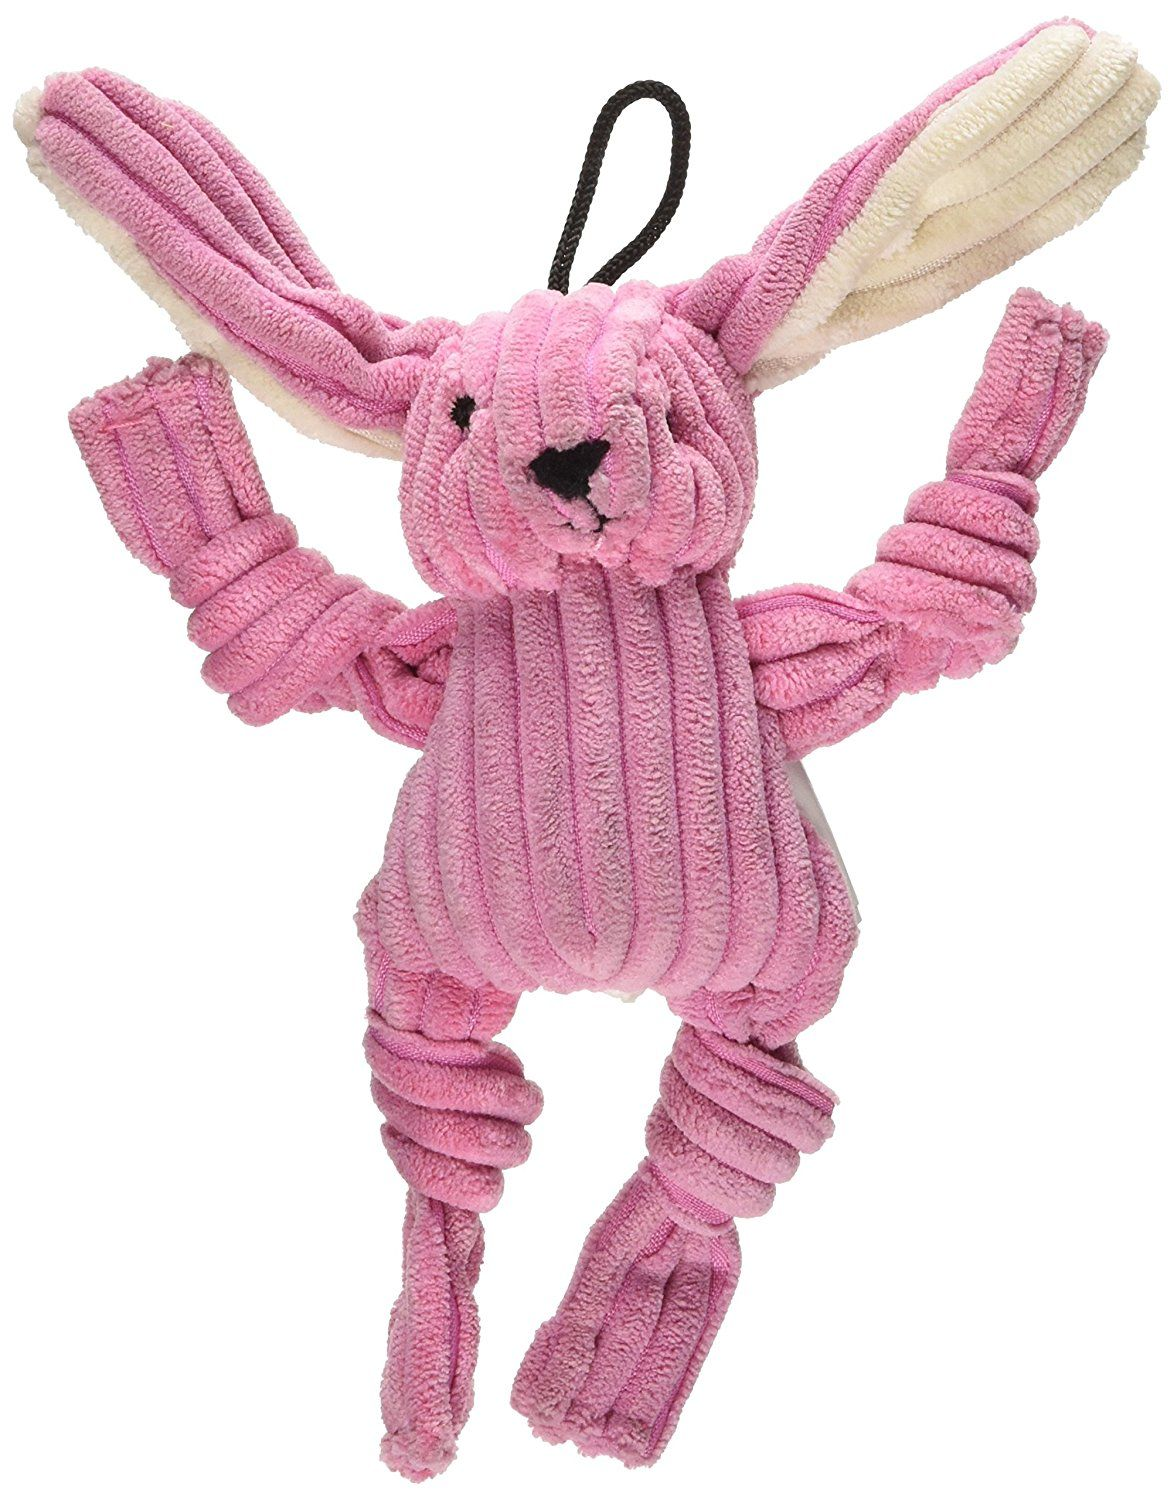 Huggle Hound 132258 Hugh Wee Huggle Bunny Dogs Toy Click Image For More Details This Is An Affiliate Link Dogchewtoys Dog Toys Dog Toy Ball